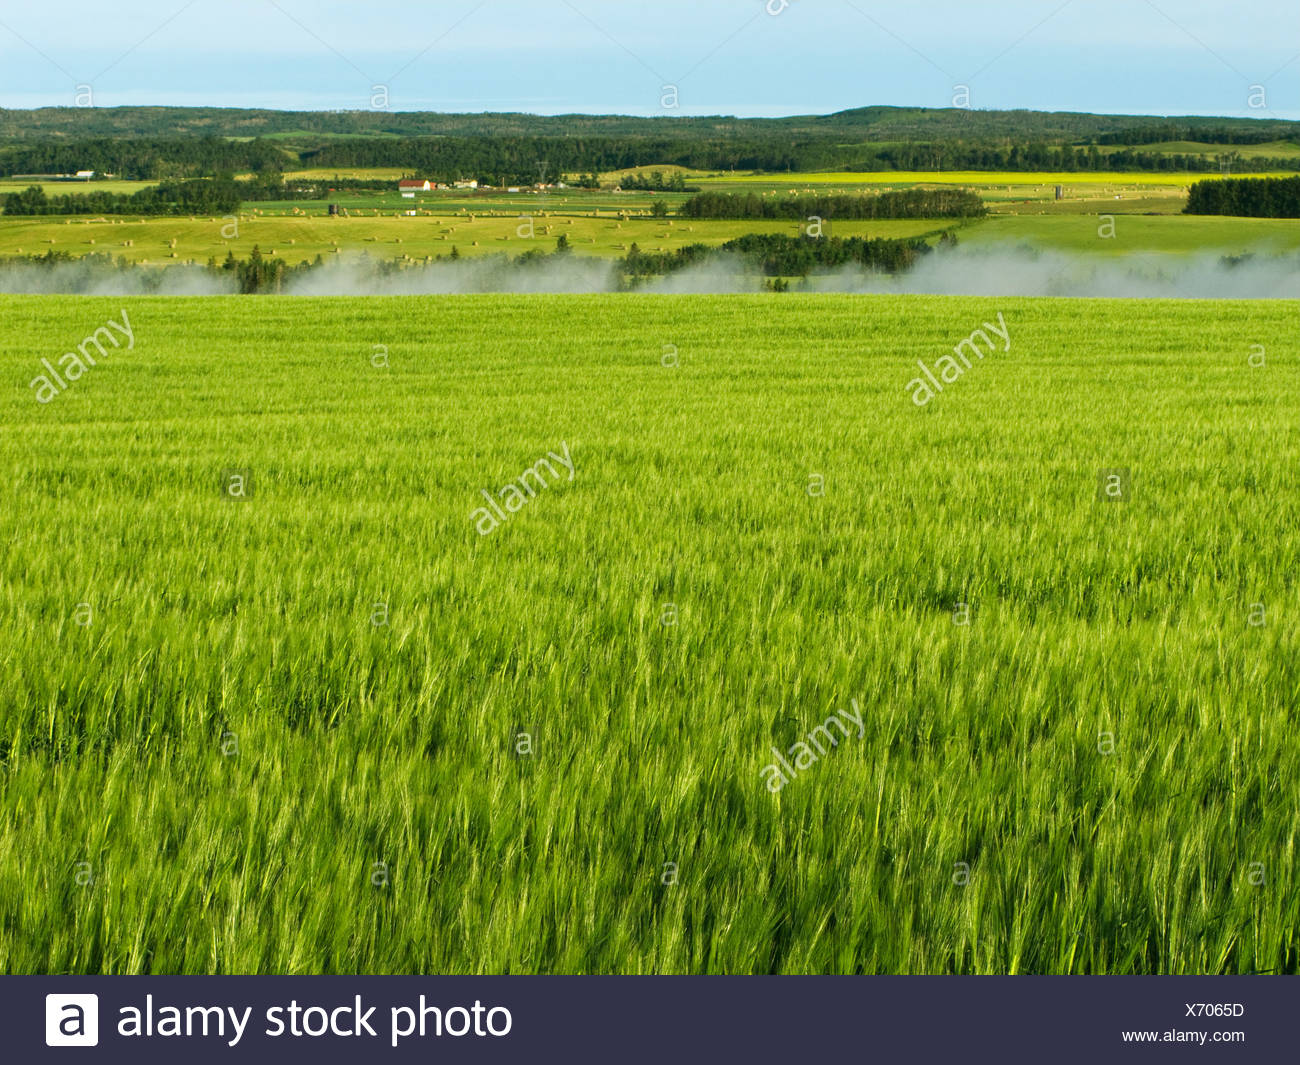 Maturing barley field along the Red Deer River with early morning fog rising up from the river valley / Alberta, Canada. - Stock Image